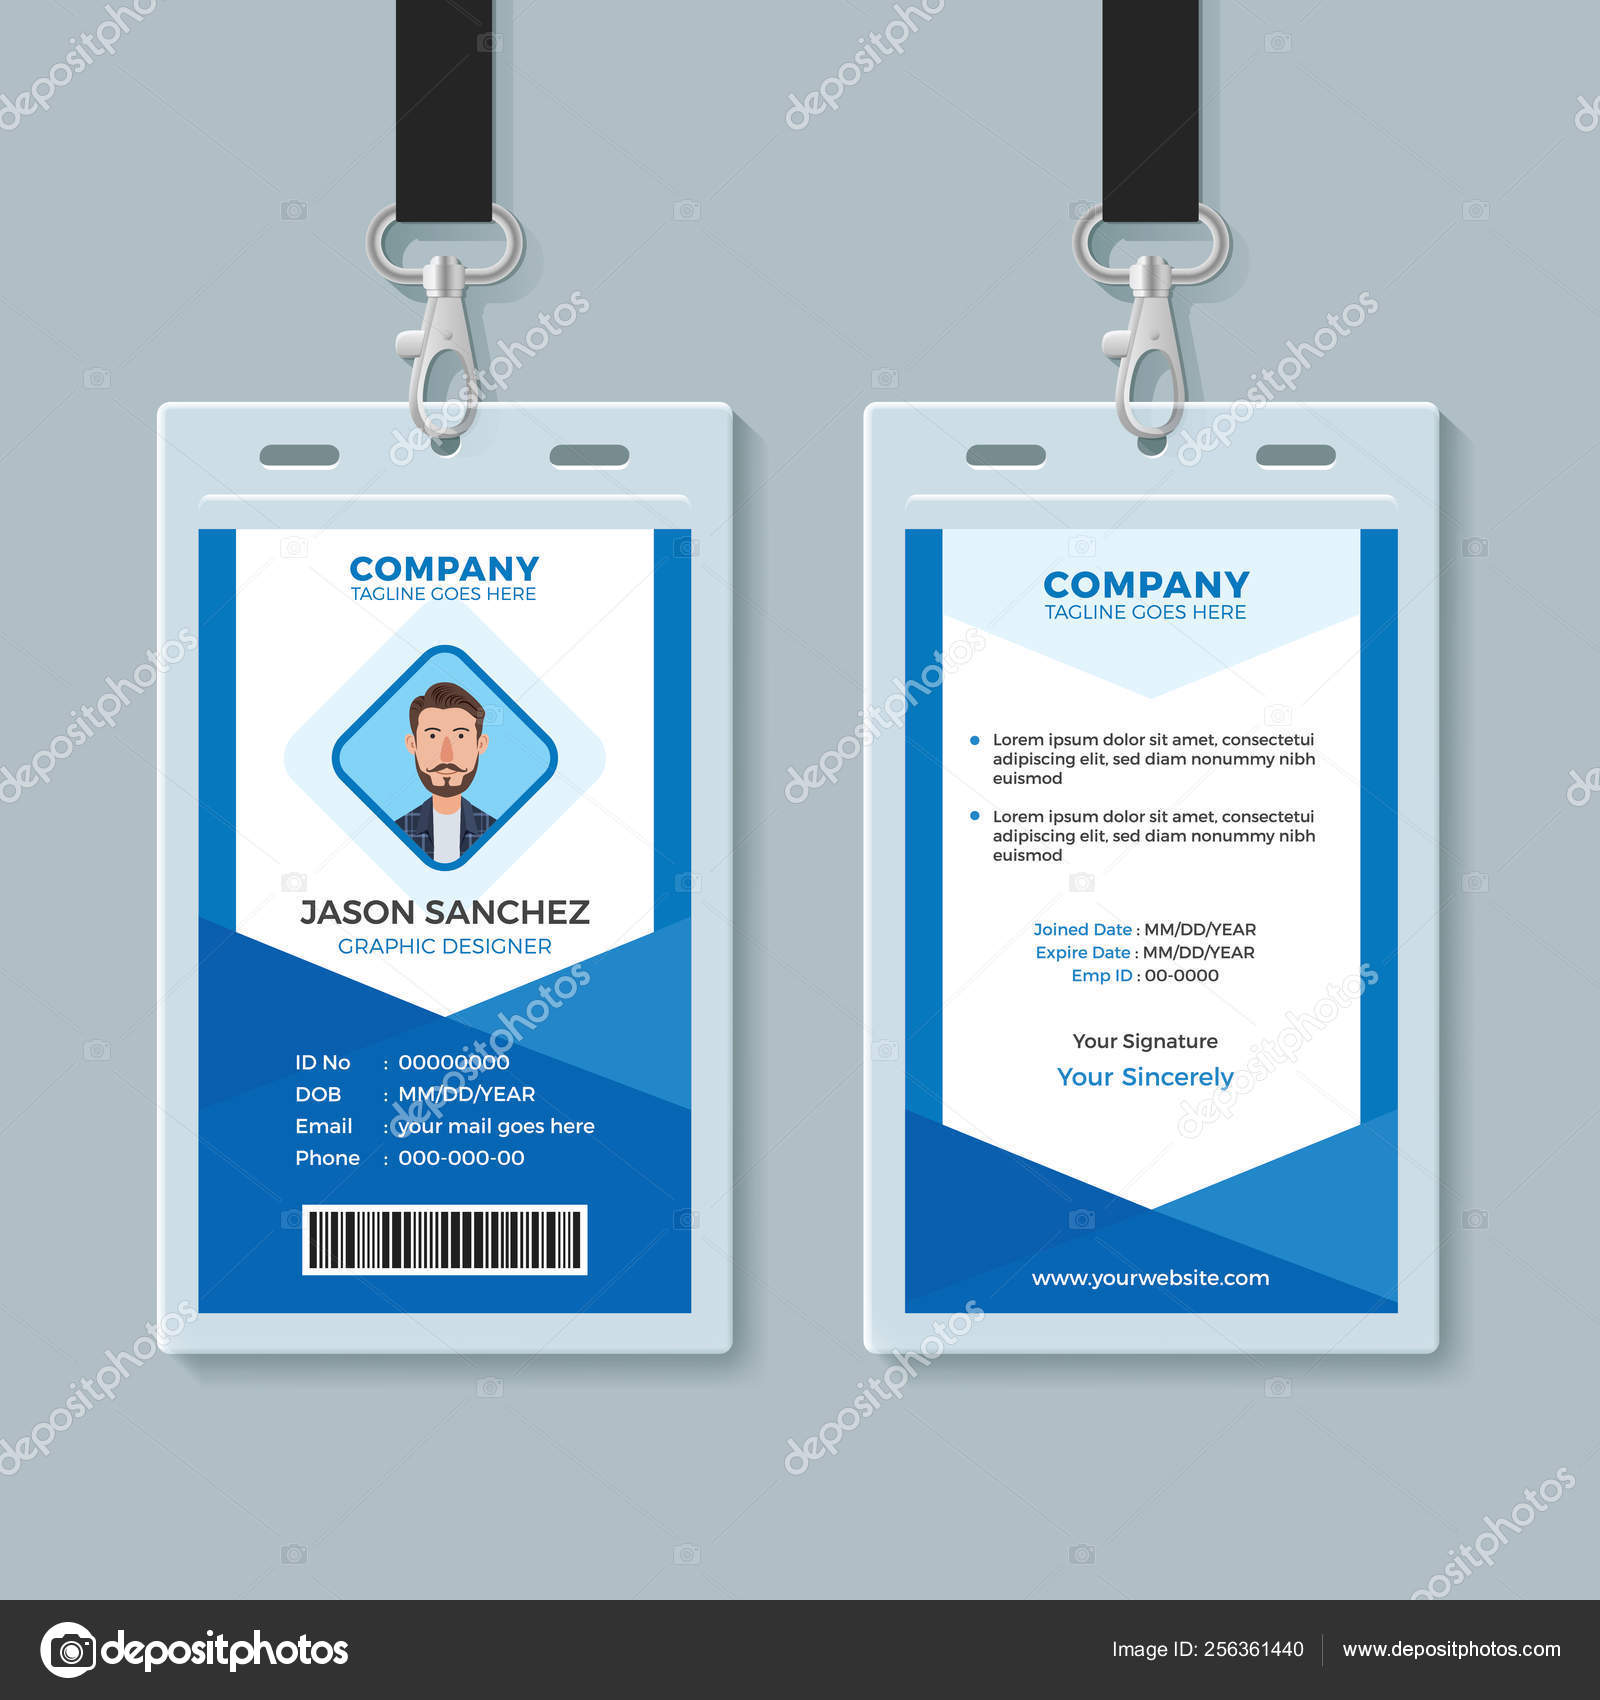 Sadly, they were also one of the first things to go. Blue Employee Identity Card Template Stock Vector Image By C Bonezboyz 256361440